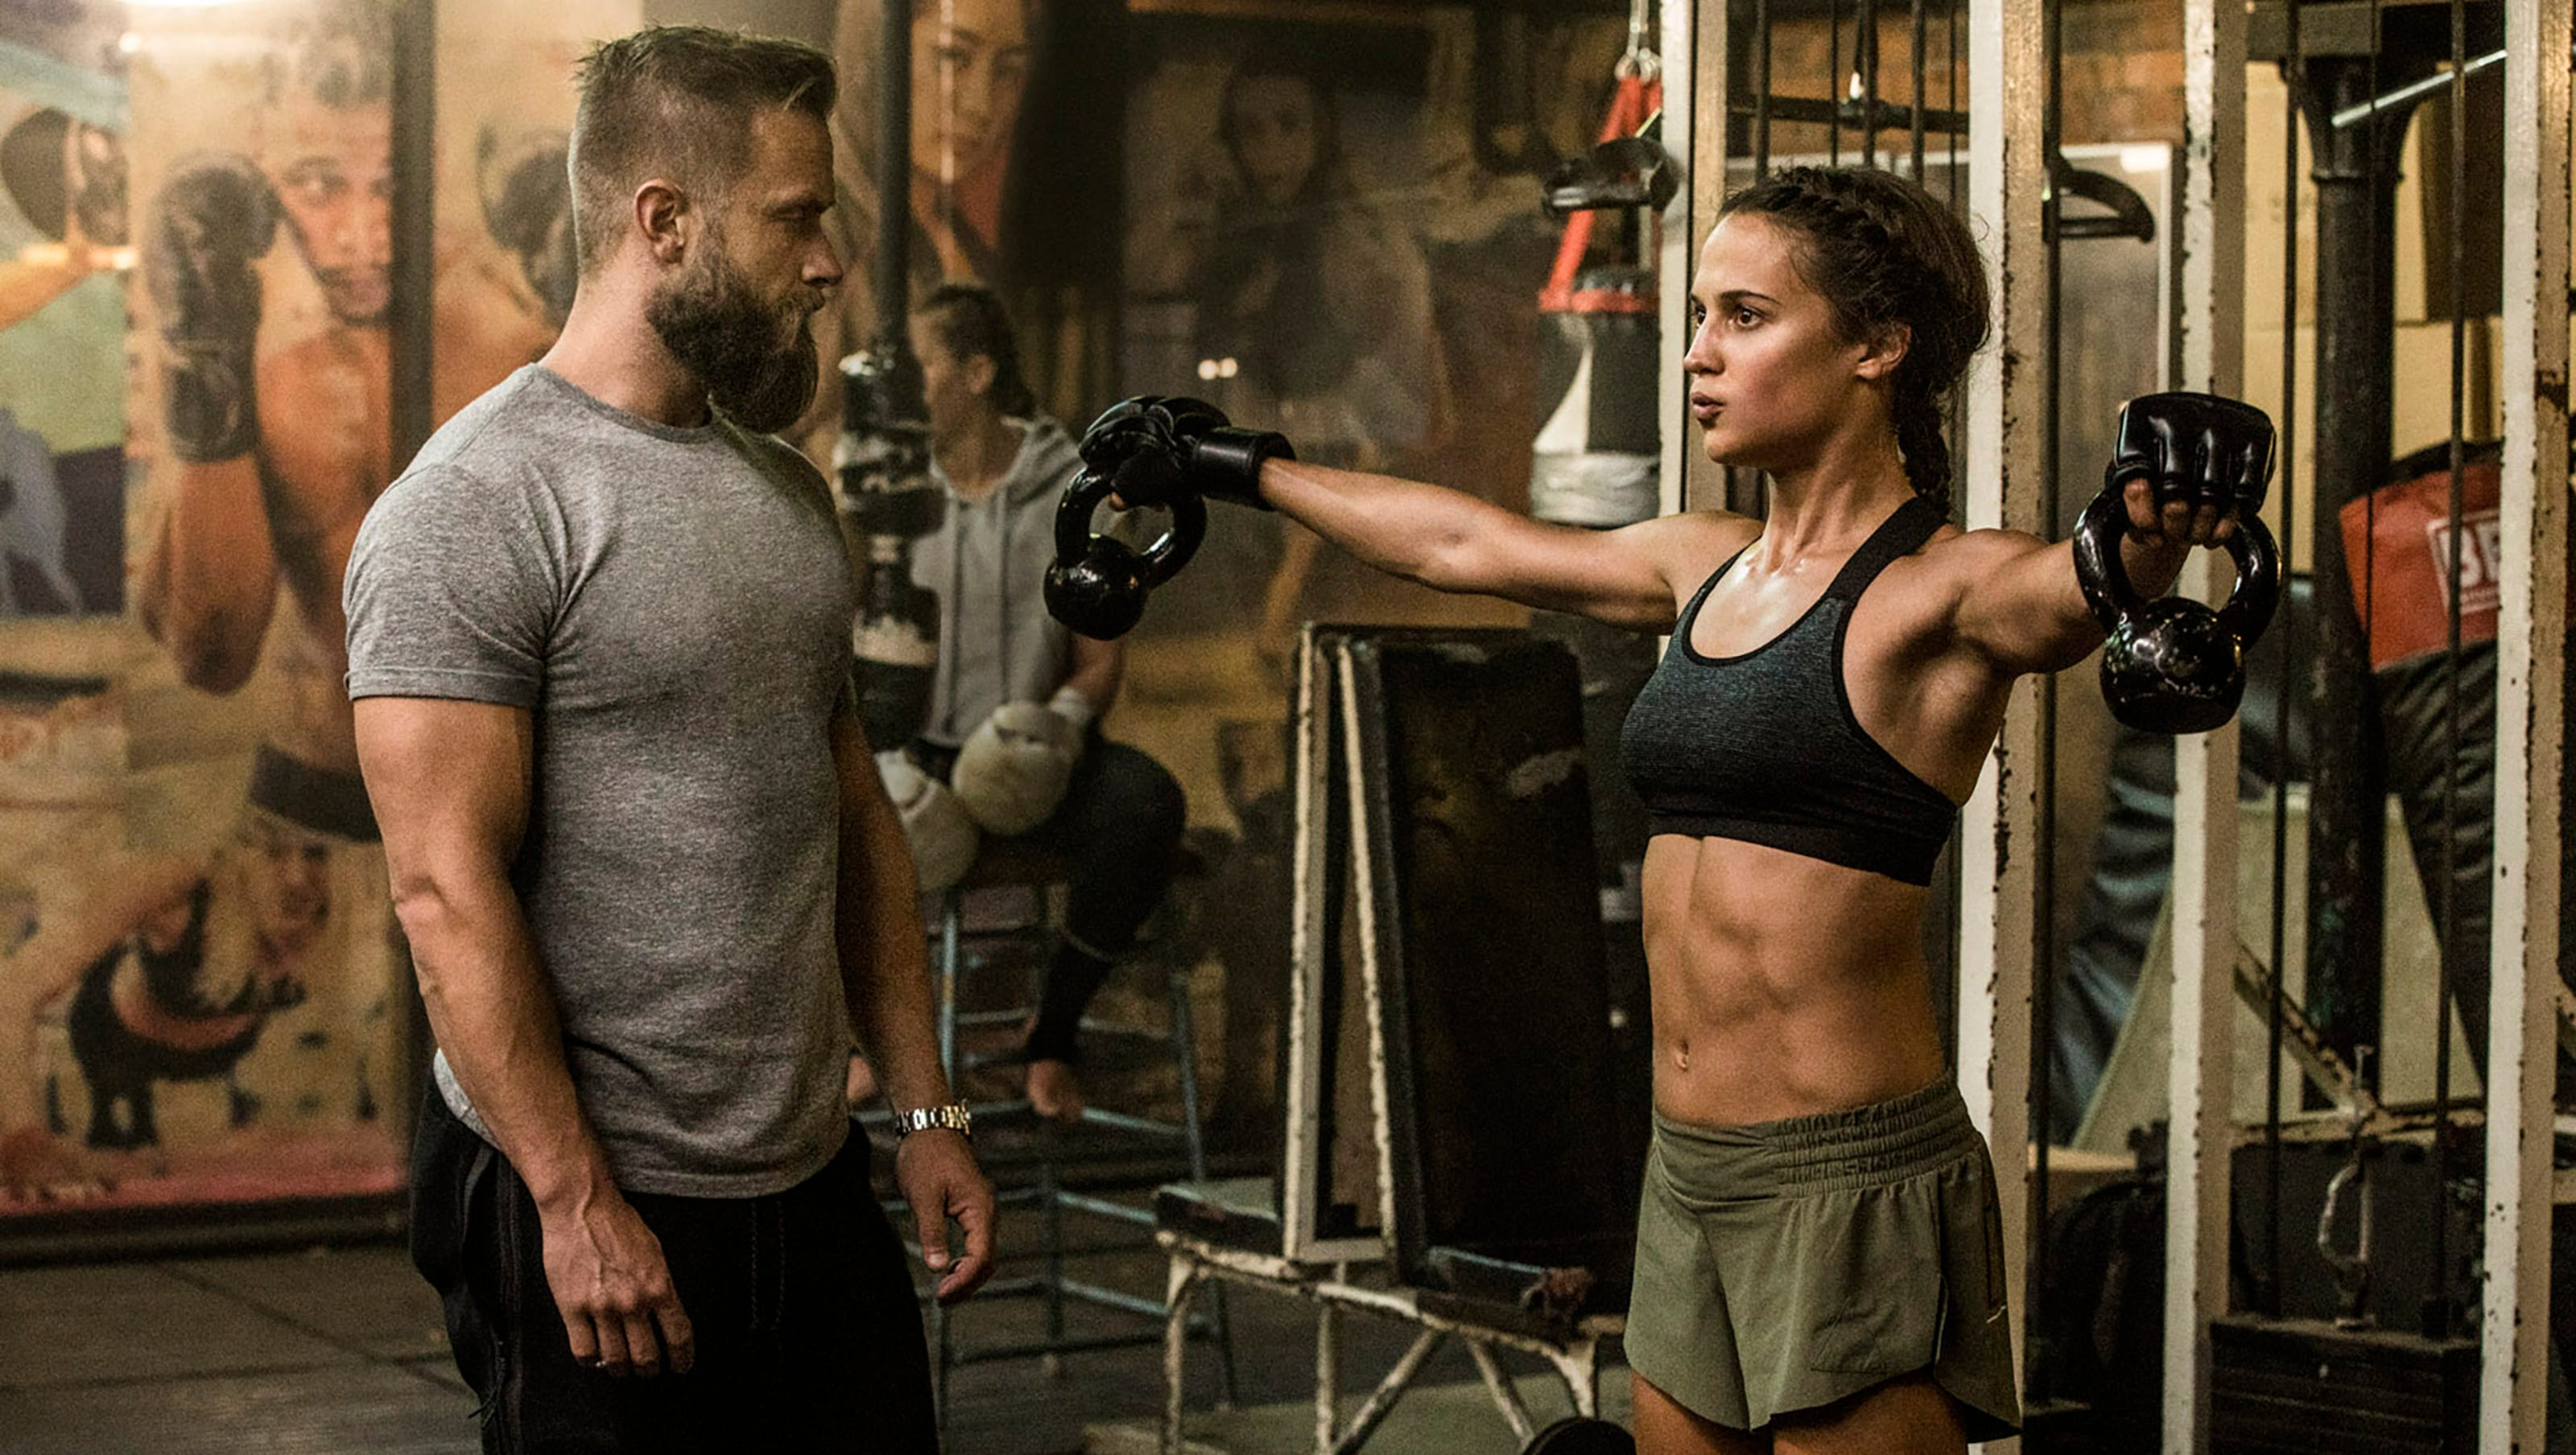 Alicia Vikander Ass how alicia vikander gained 12 pounds (of muscle) for 'tomb raider'